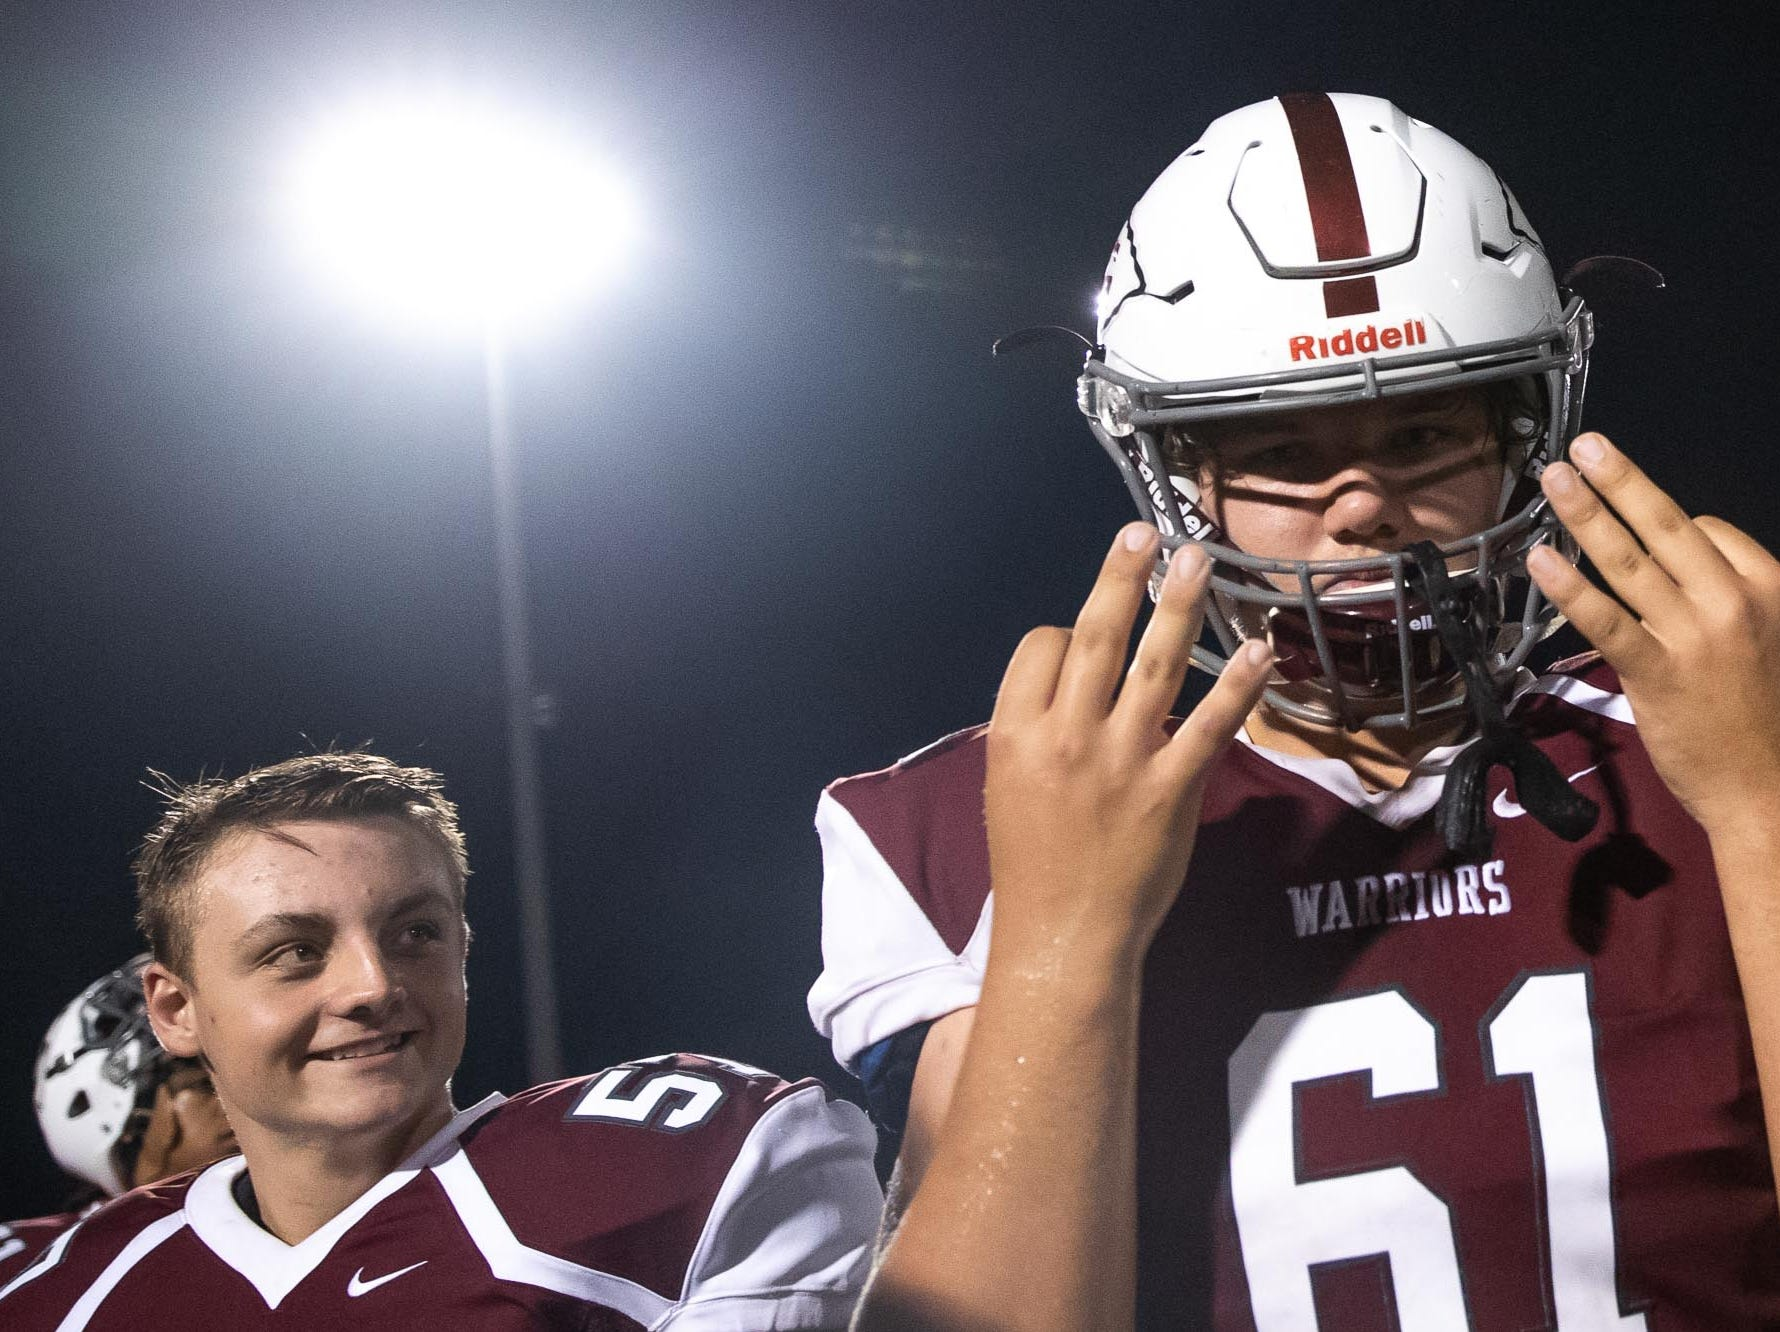 Gettysburg's Kaleb Ireland (61) celebrates after winning a game against West York, Friday, Sept. 14, 2018, in Gettysburg. Gettysburg defeated West York 42-22.